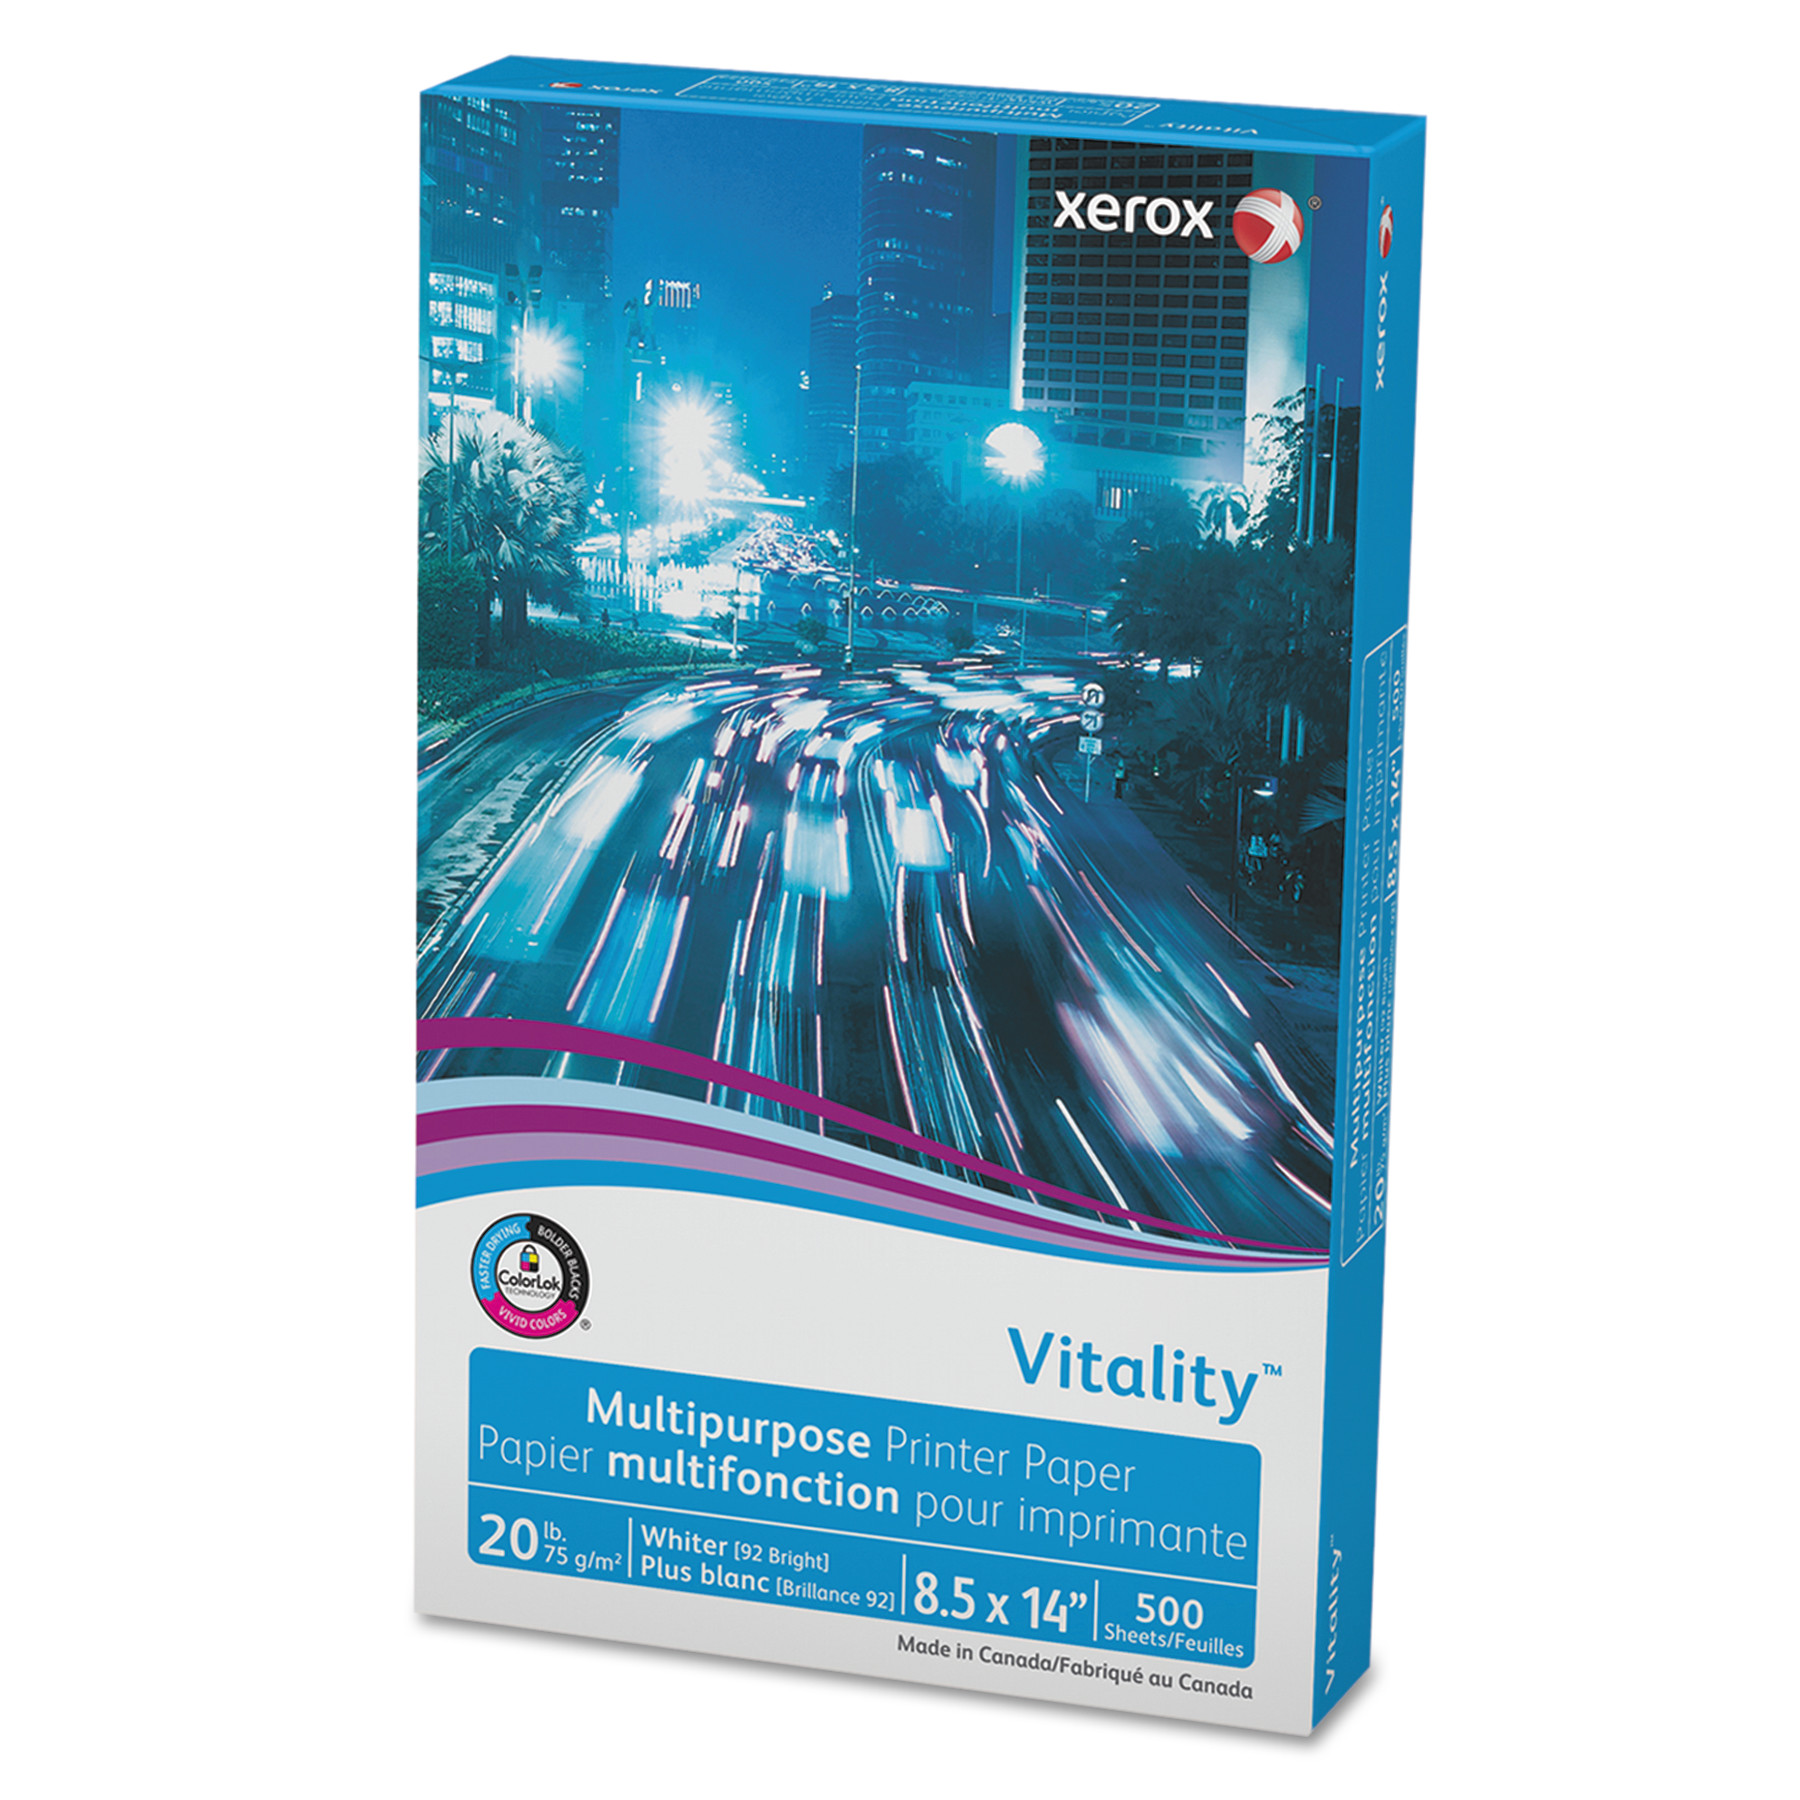 Xerox Vitality Multipurpose Printer Paper, 8 1/2 x 14, White, 500 Sheets/RM